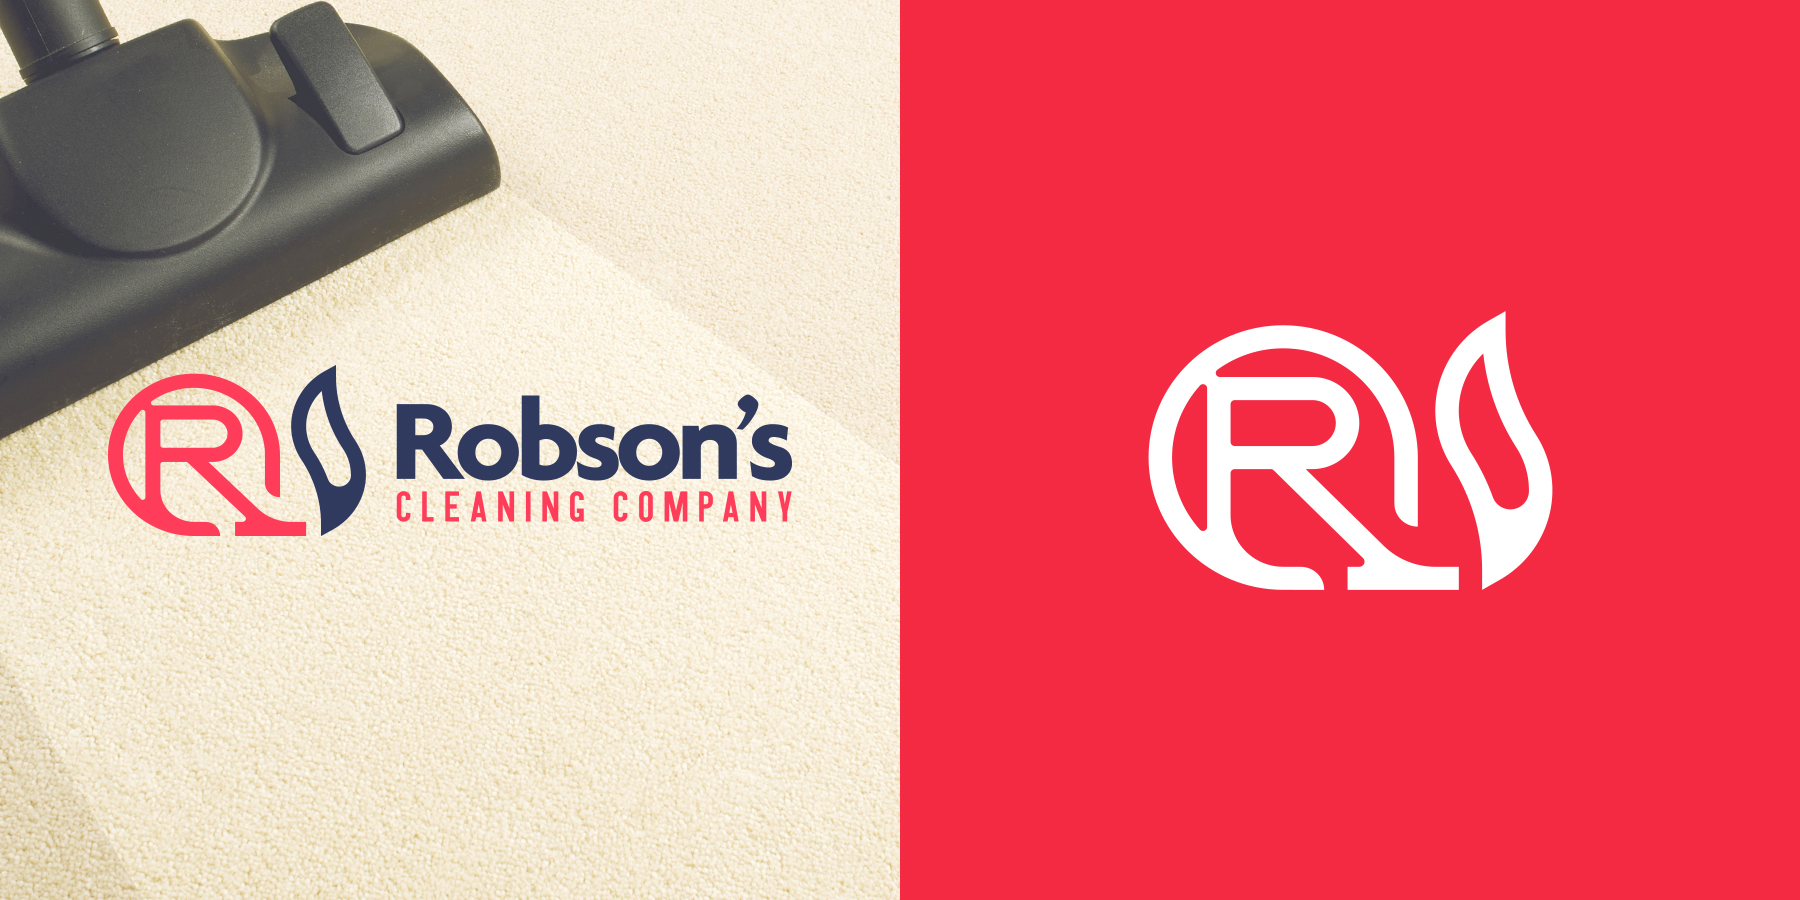 'Robson's Cleaning Company'